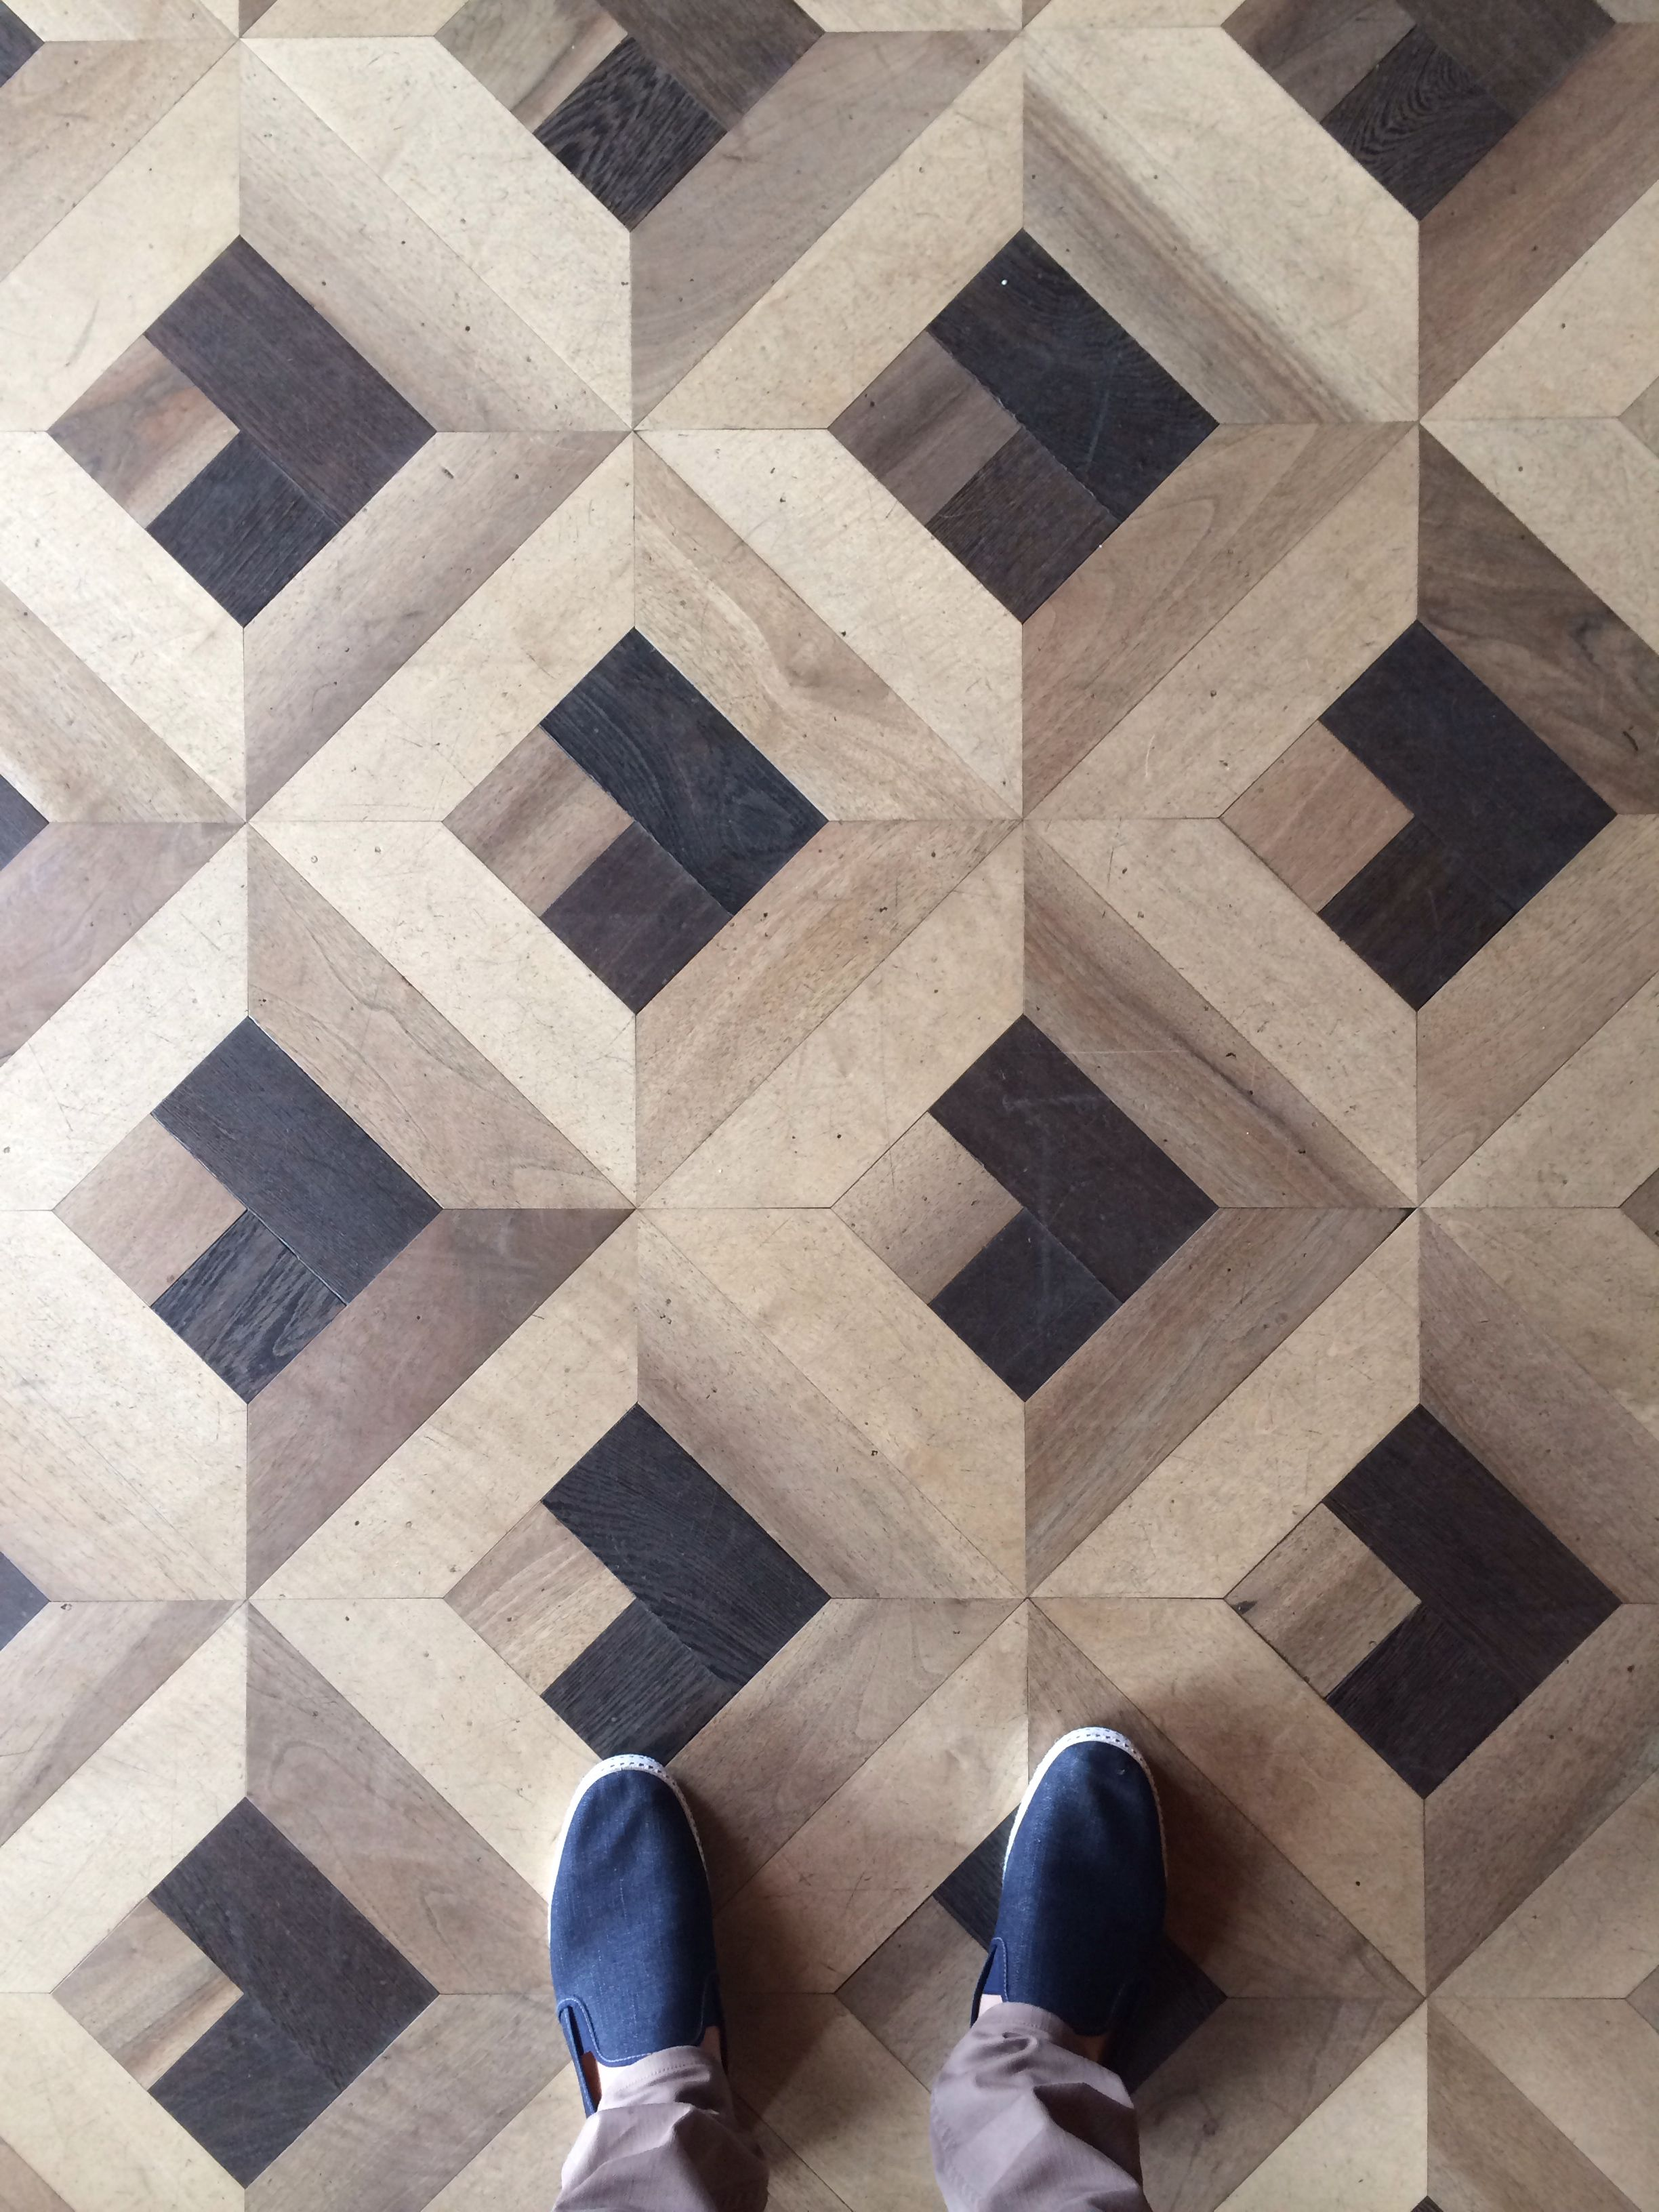 Floor design the grand hotel tremezzo httppinterest timber floors at the grand hotel tremezzo the different tones of timber and the way the parquet is laid creates a dramatic effect dailygadgetfo Images